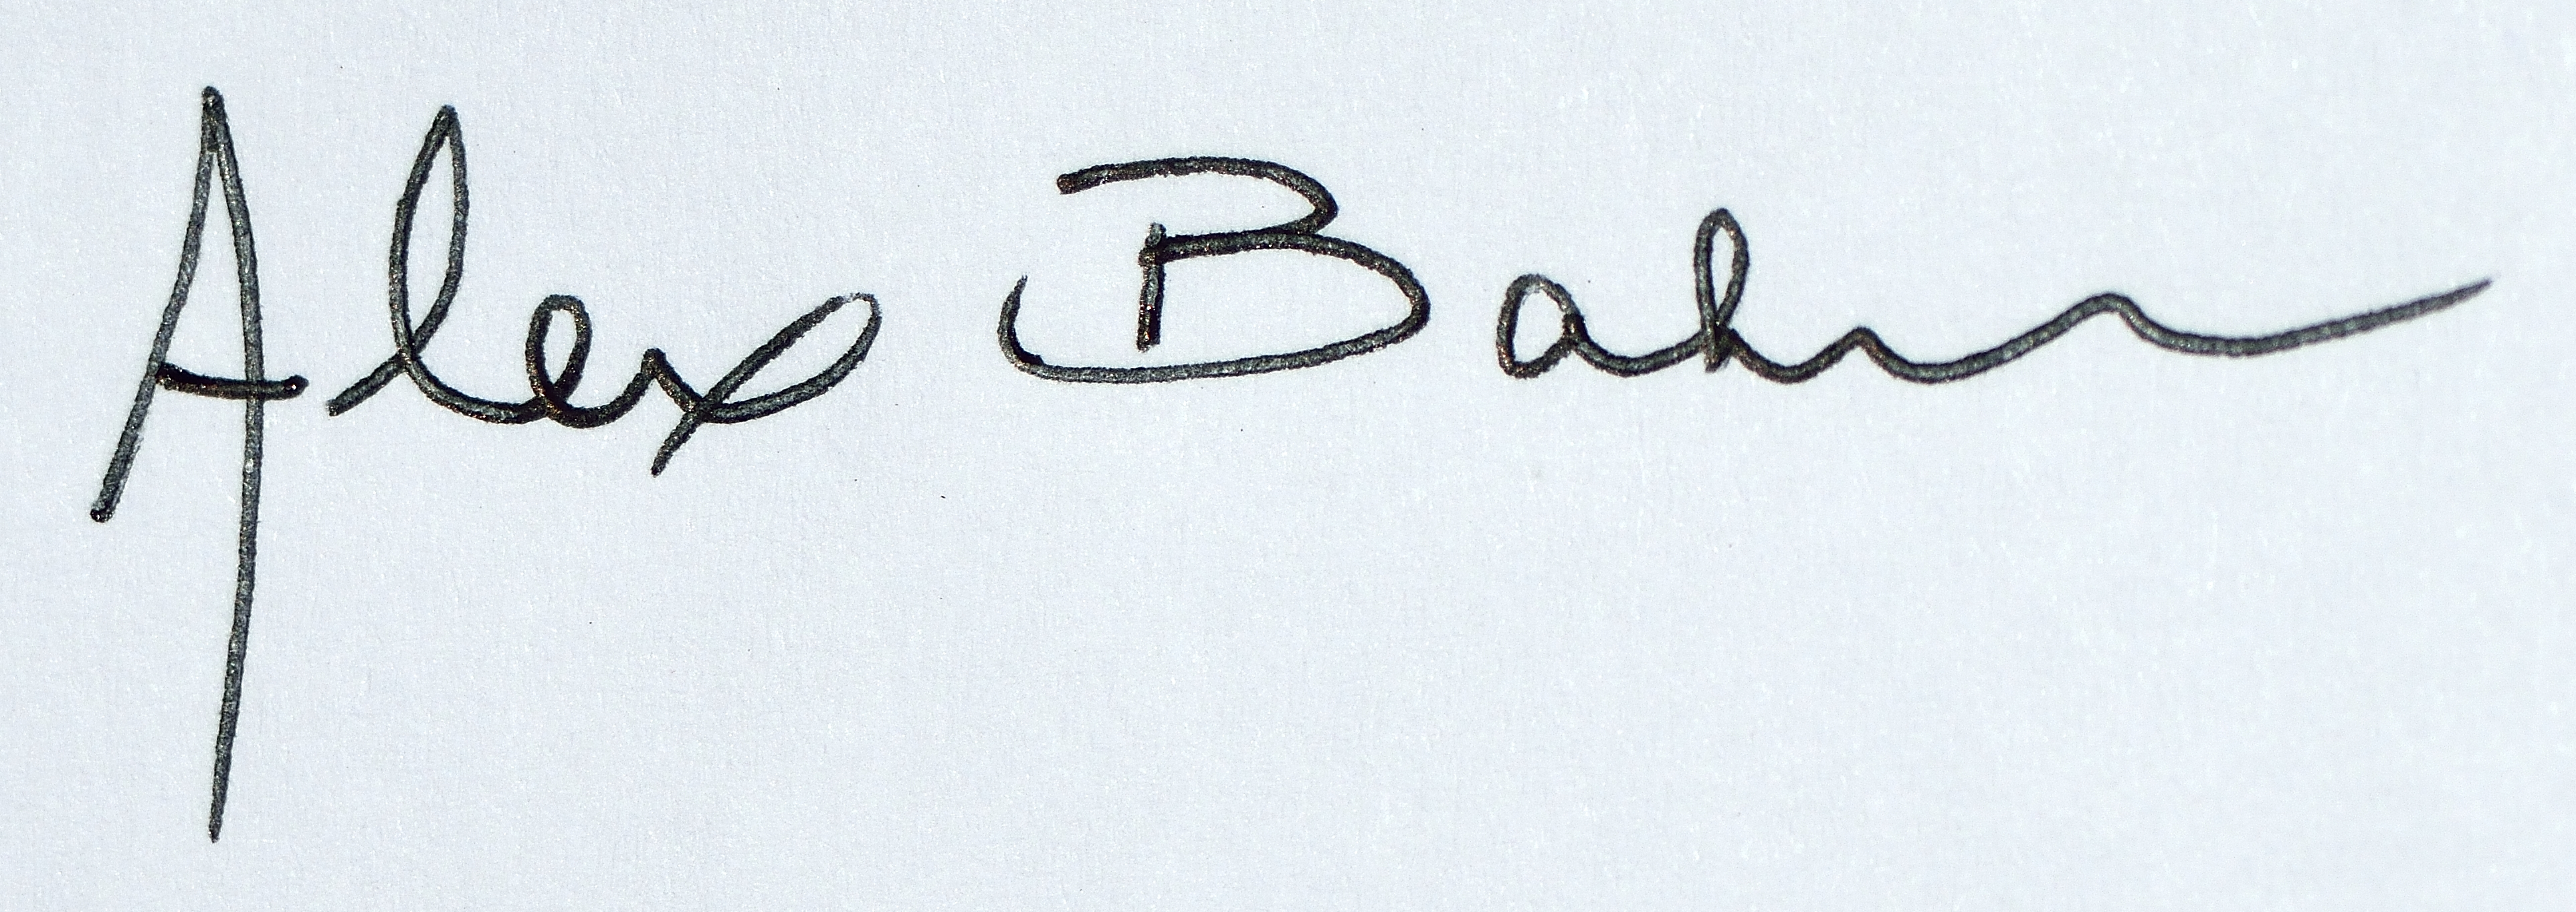 Alex Baker's Signature